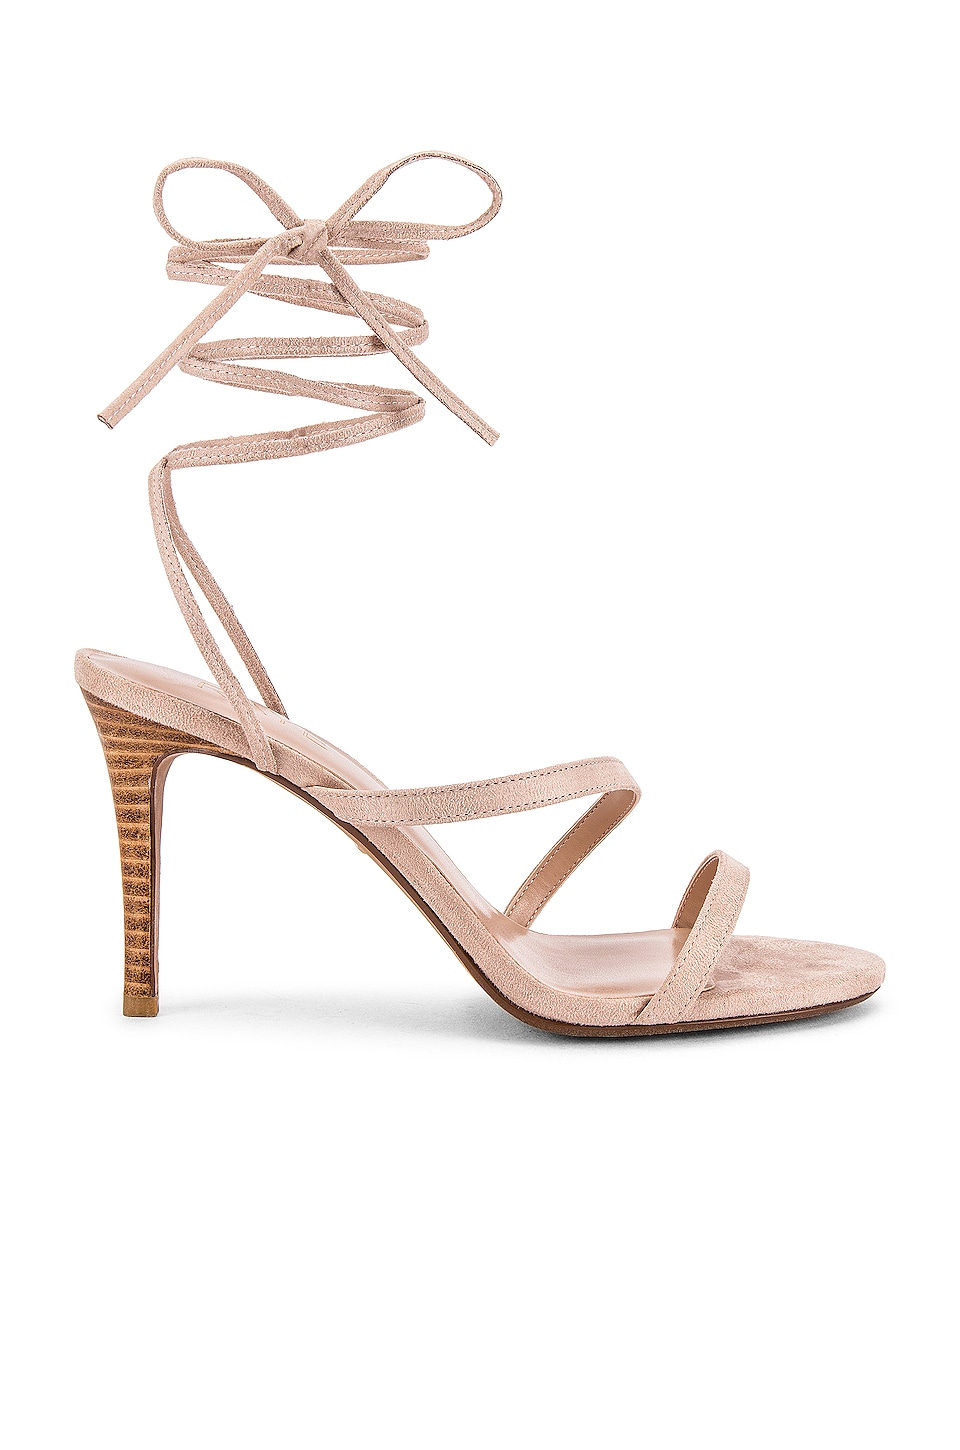 RAYE Rosemead Heel in Tan